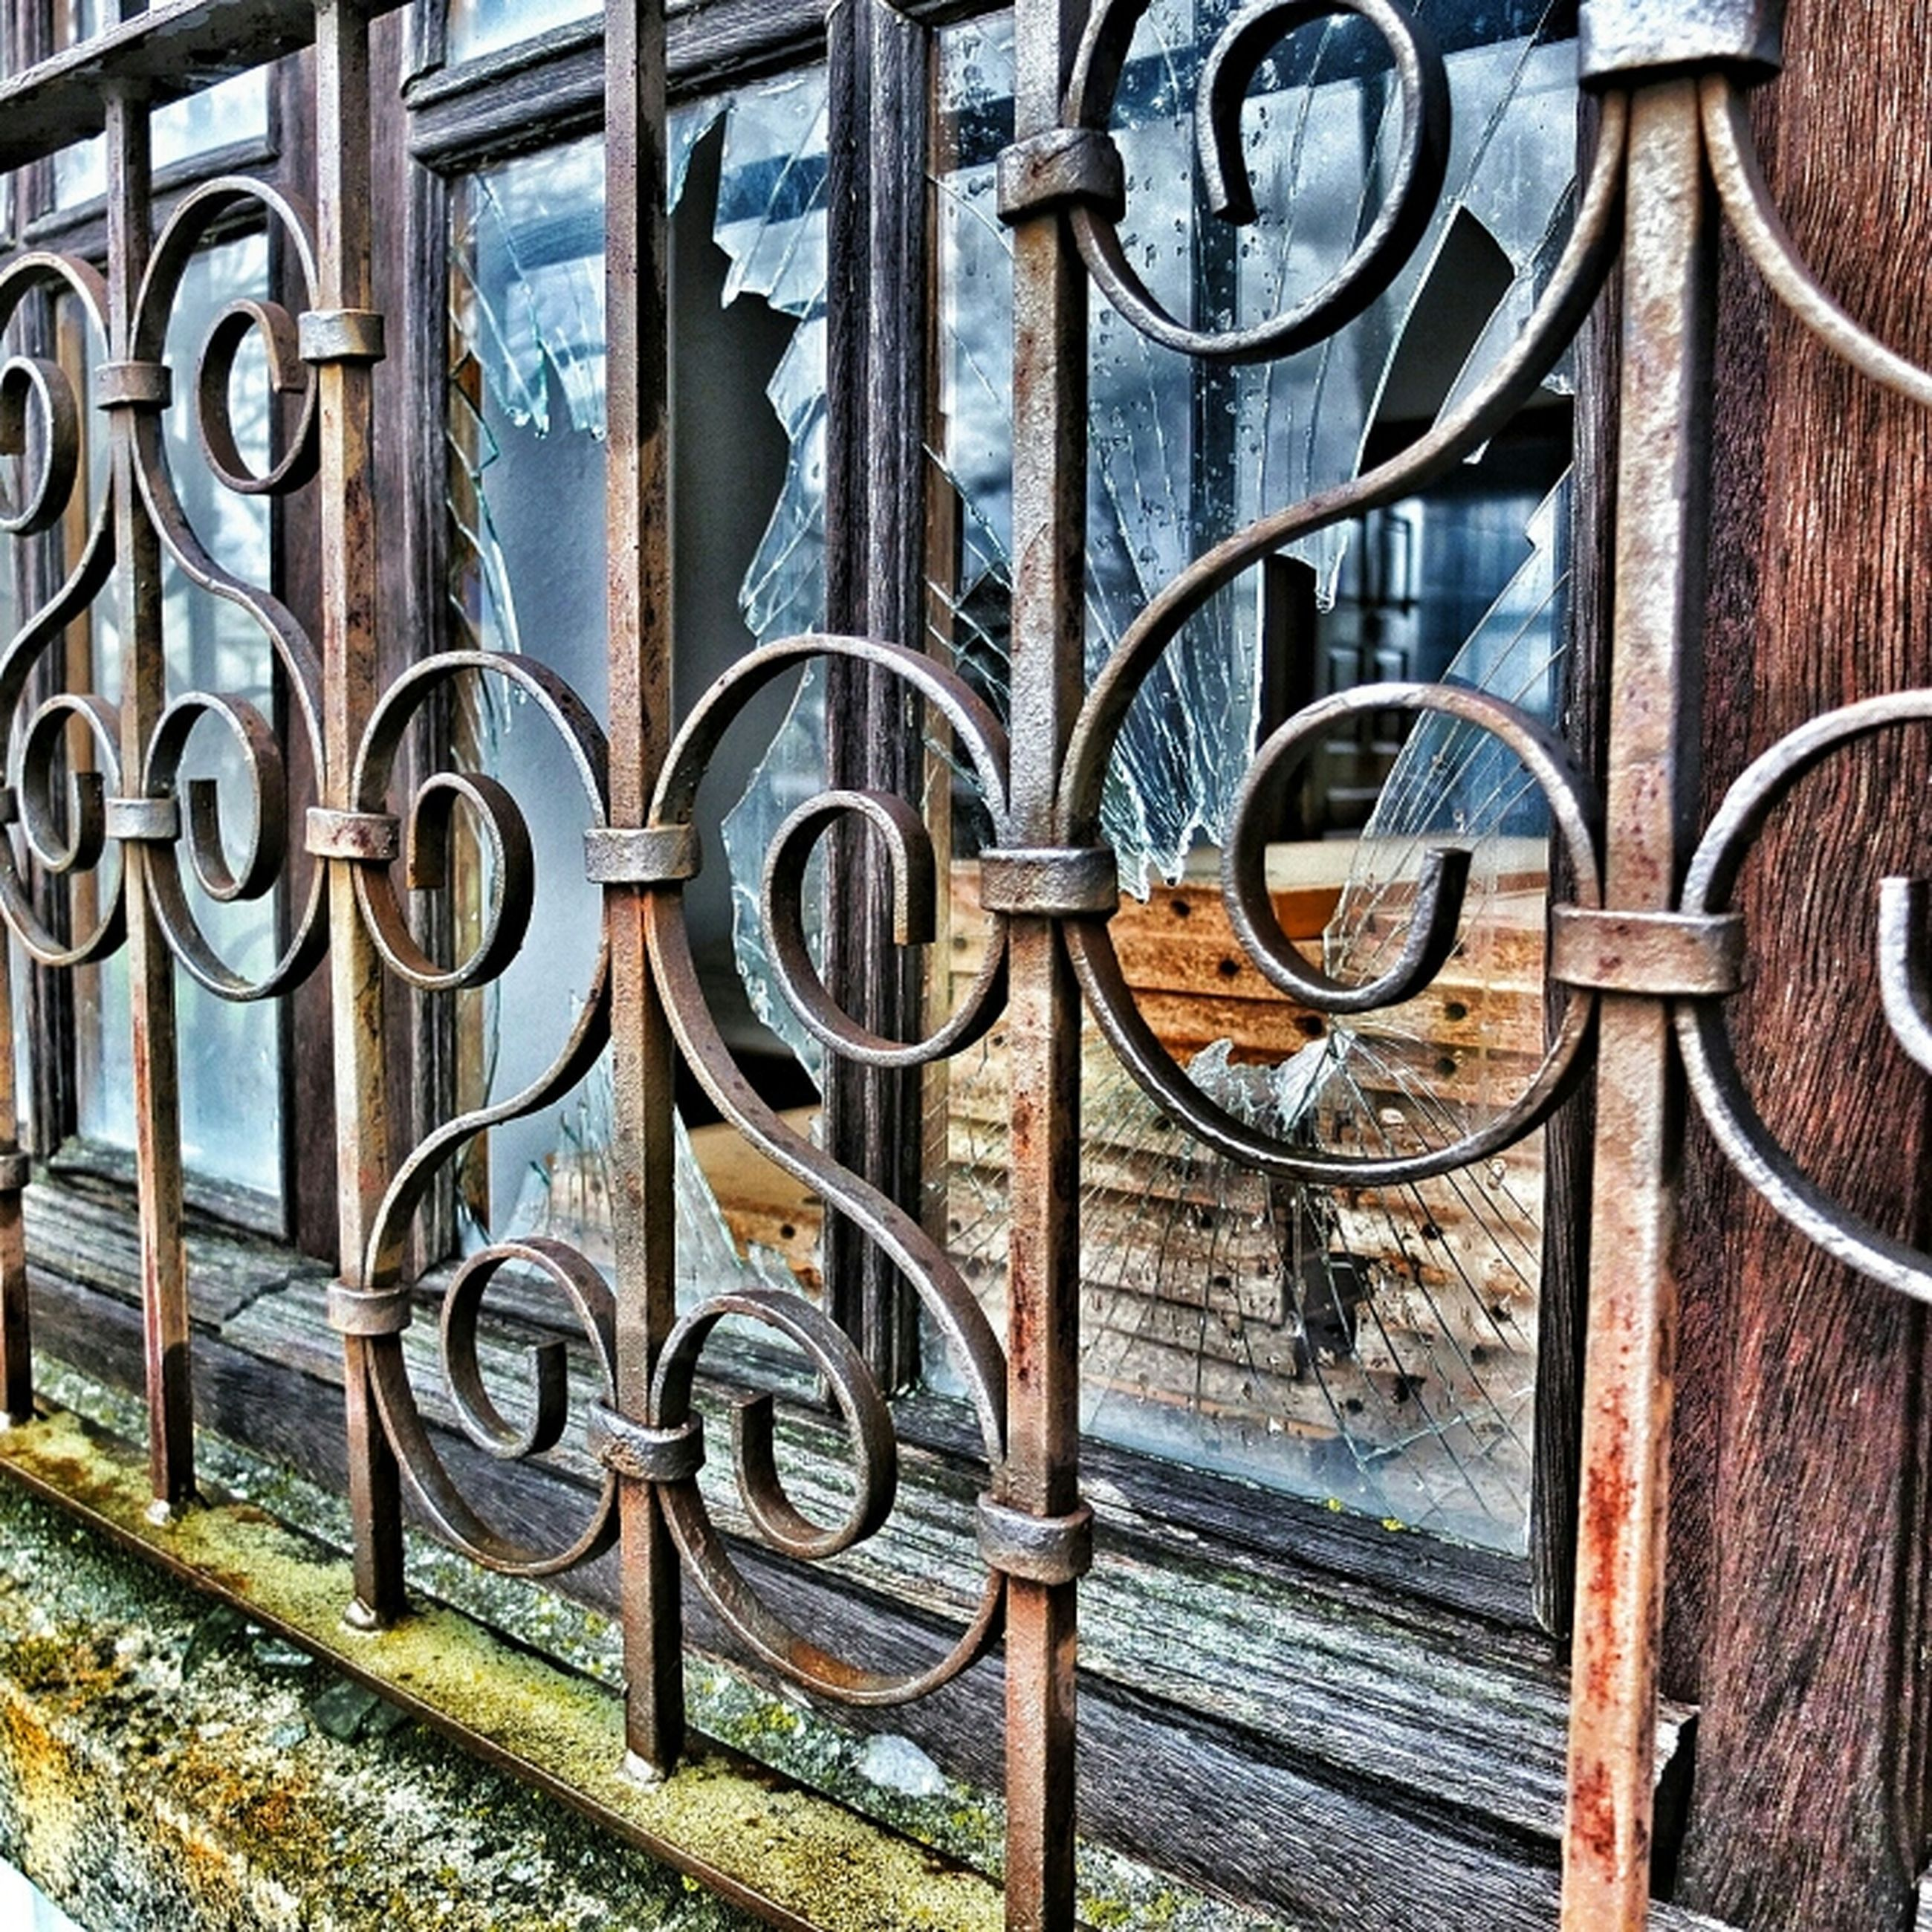 metal, built structure, architecture, building exterior, pattern, wall - building feature, gate, design, railing, protection, graffiti, safety, security, metallic, day, outdoors, no people, fence, bicycle, closed